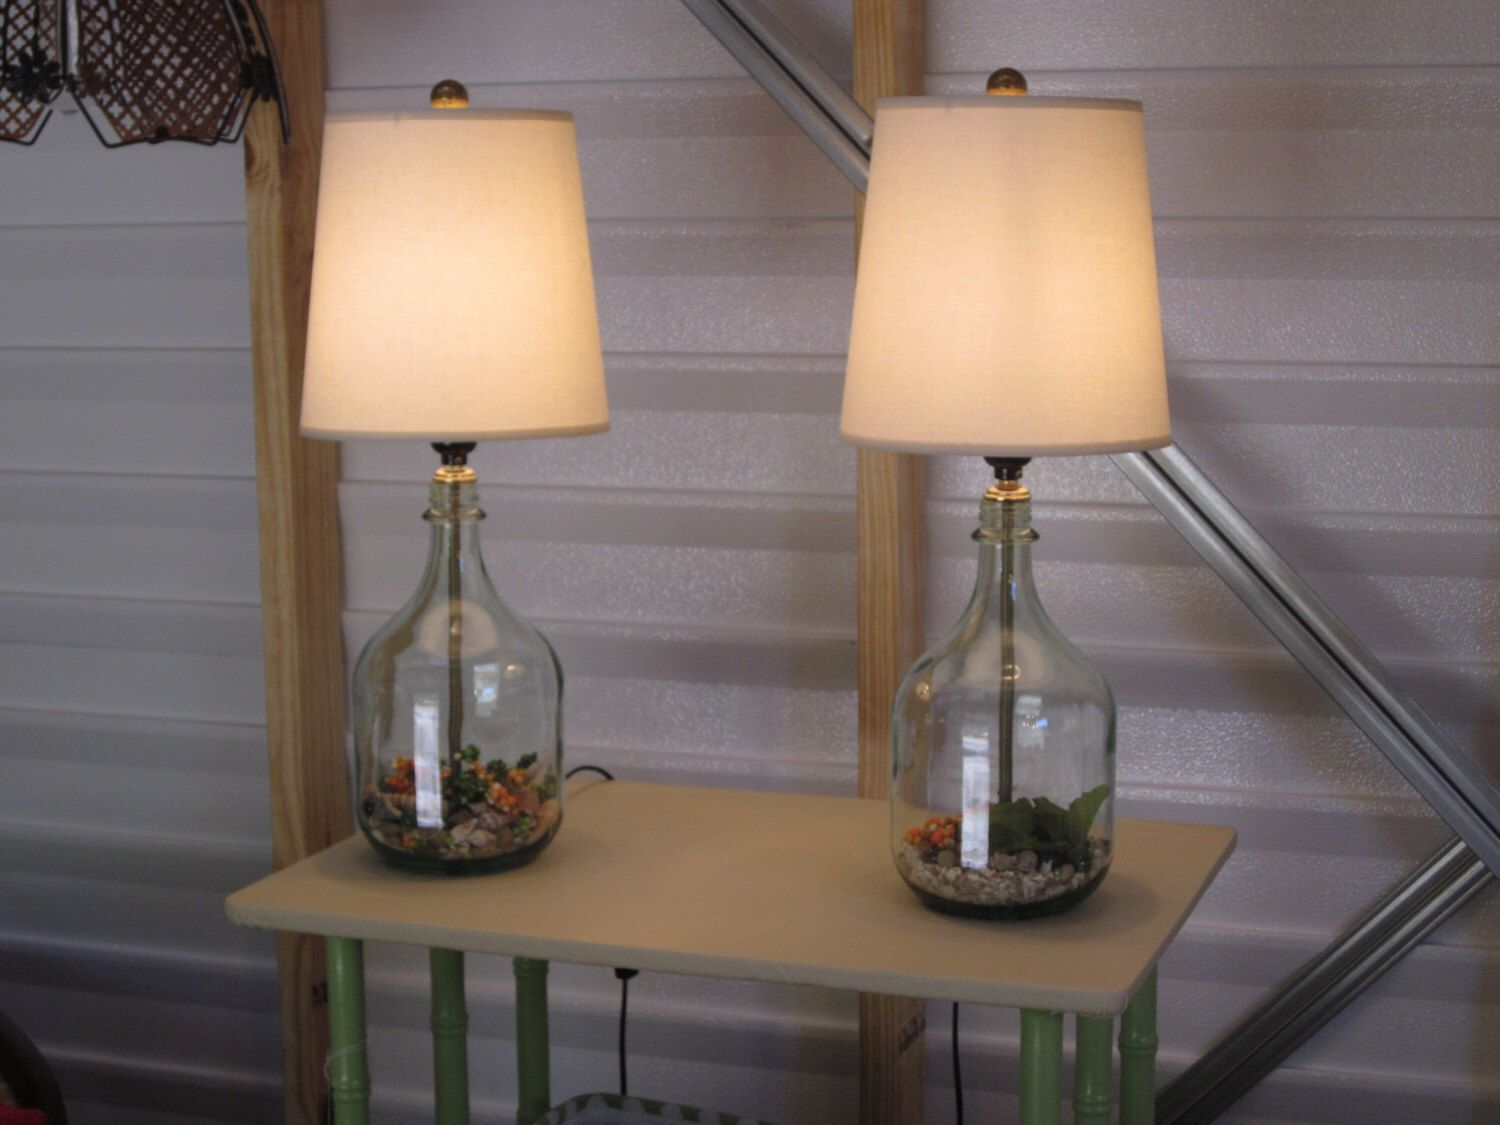 Set Of 2 Table Lamps Bedside Lamps Bedroom Lamps Nautical Decor Glass Table Lamps Modern Decor Small Table L Table Lamp Small Table Lamp Glass Table Lamp